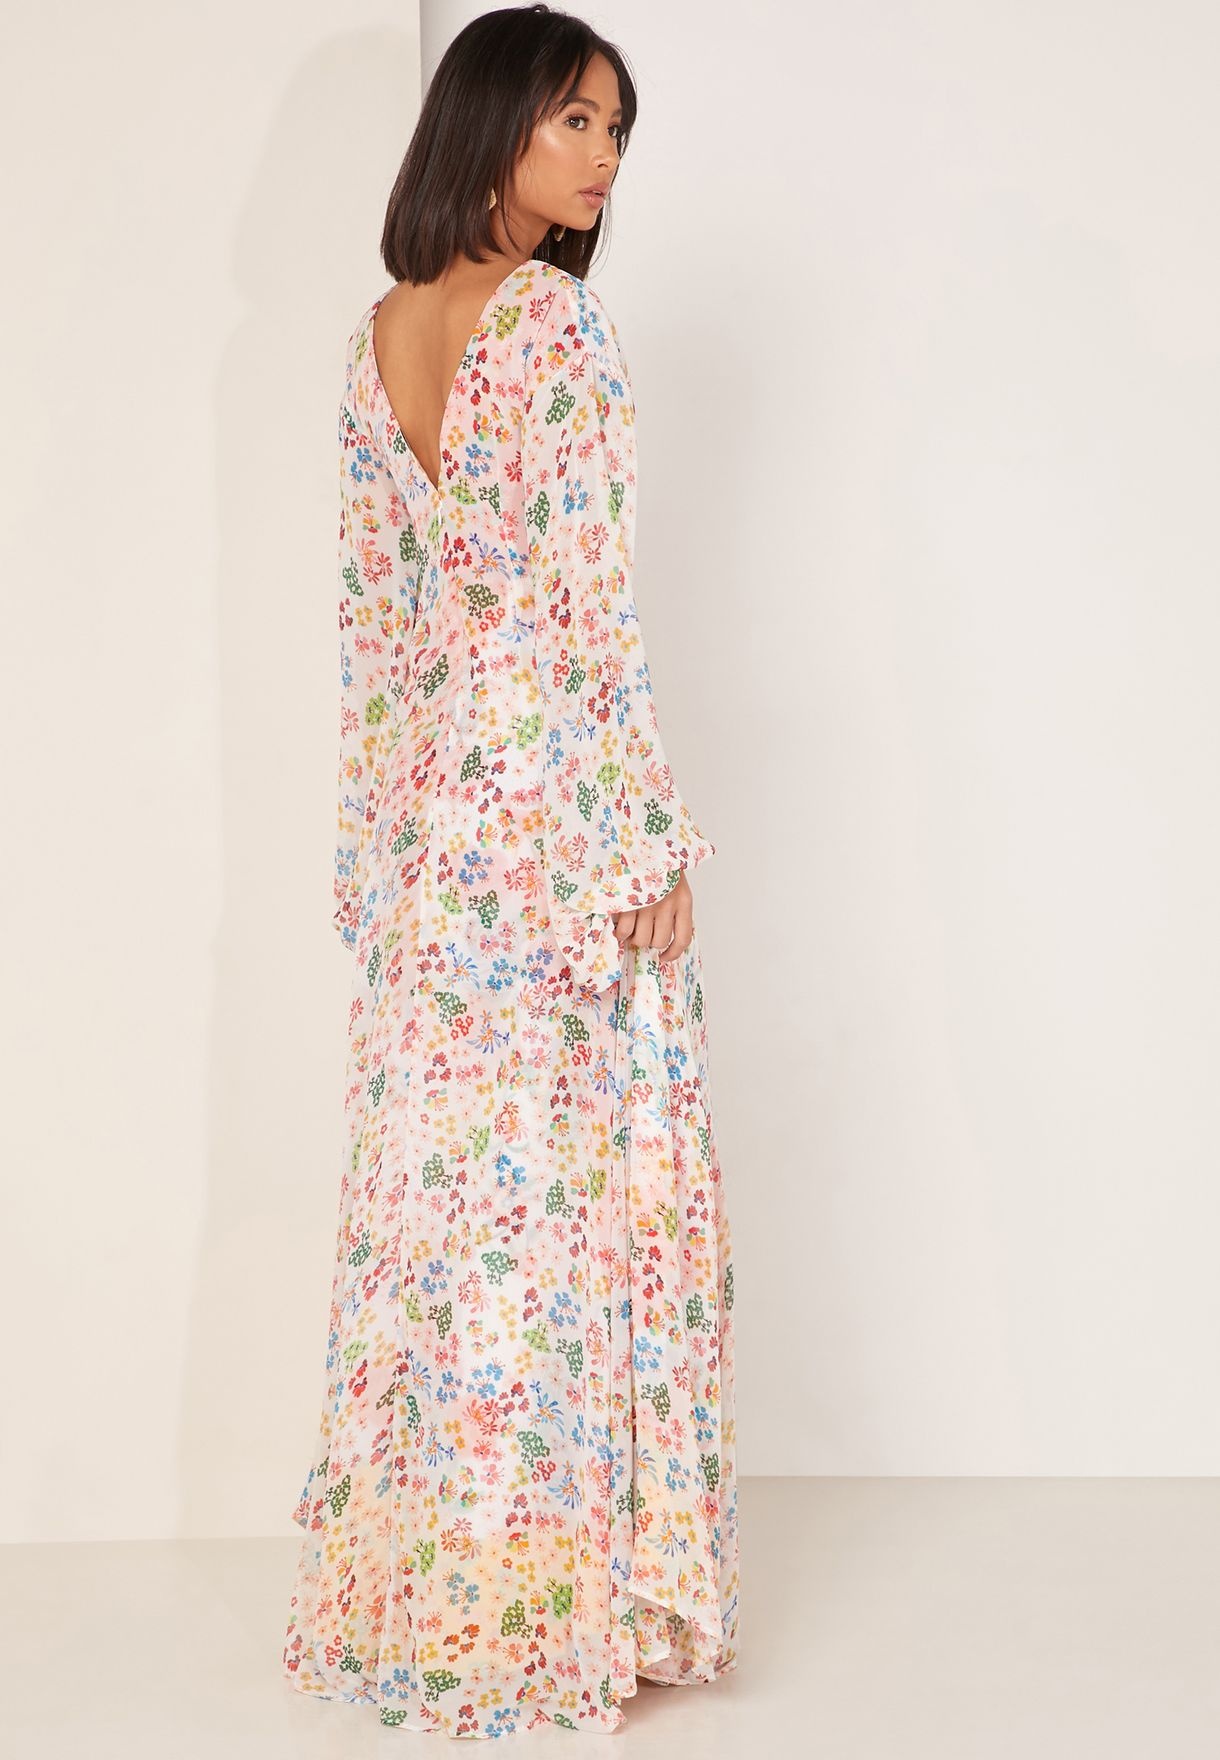 Catalina Flute Sleeve Printed Dress